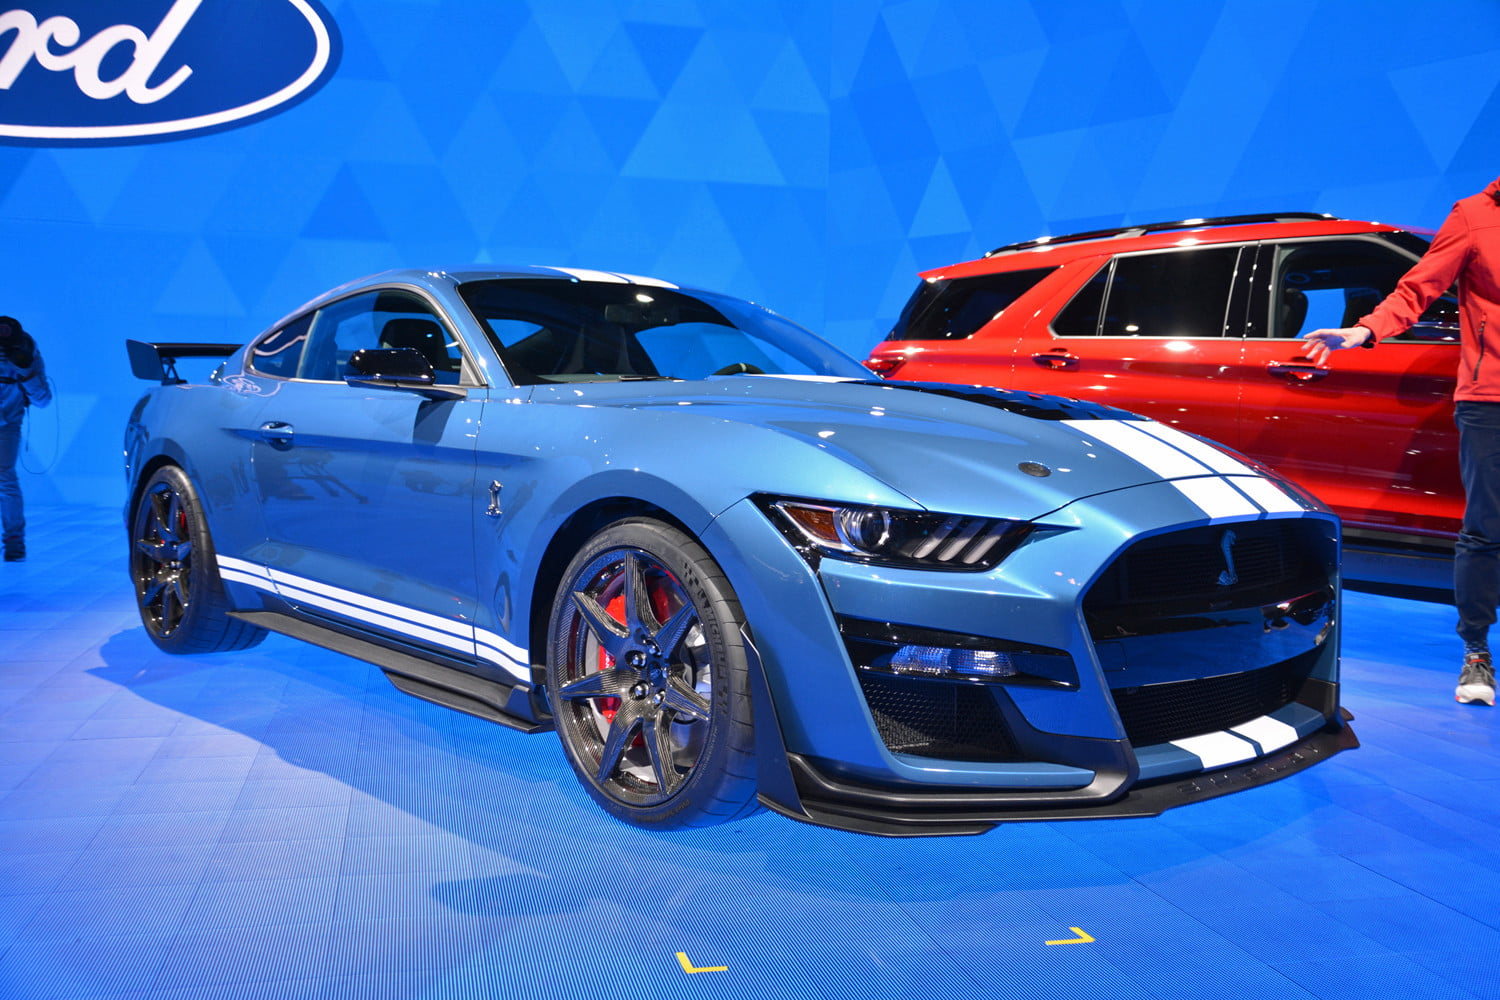 2019 Ford Mustang Sports Car Models Specs Ford Com >> 2020 Ford Mustang Shelby Gt500 Debuts At 2019 Detroit Auto